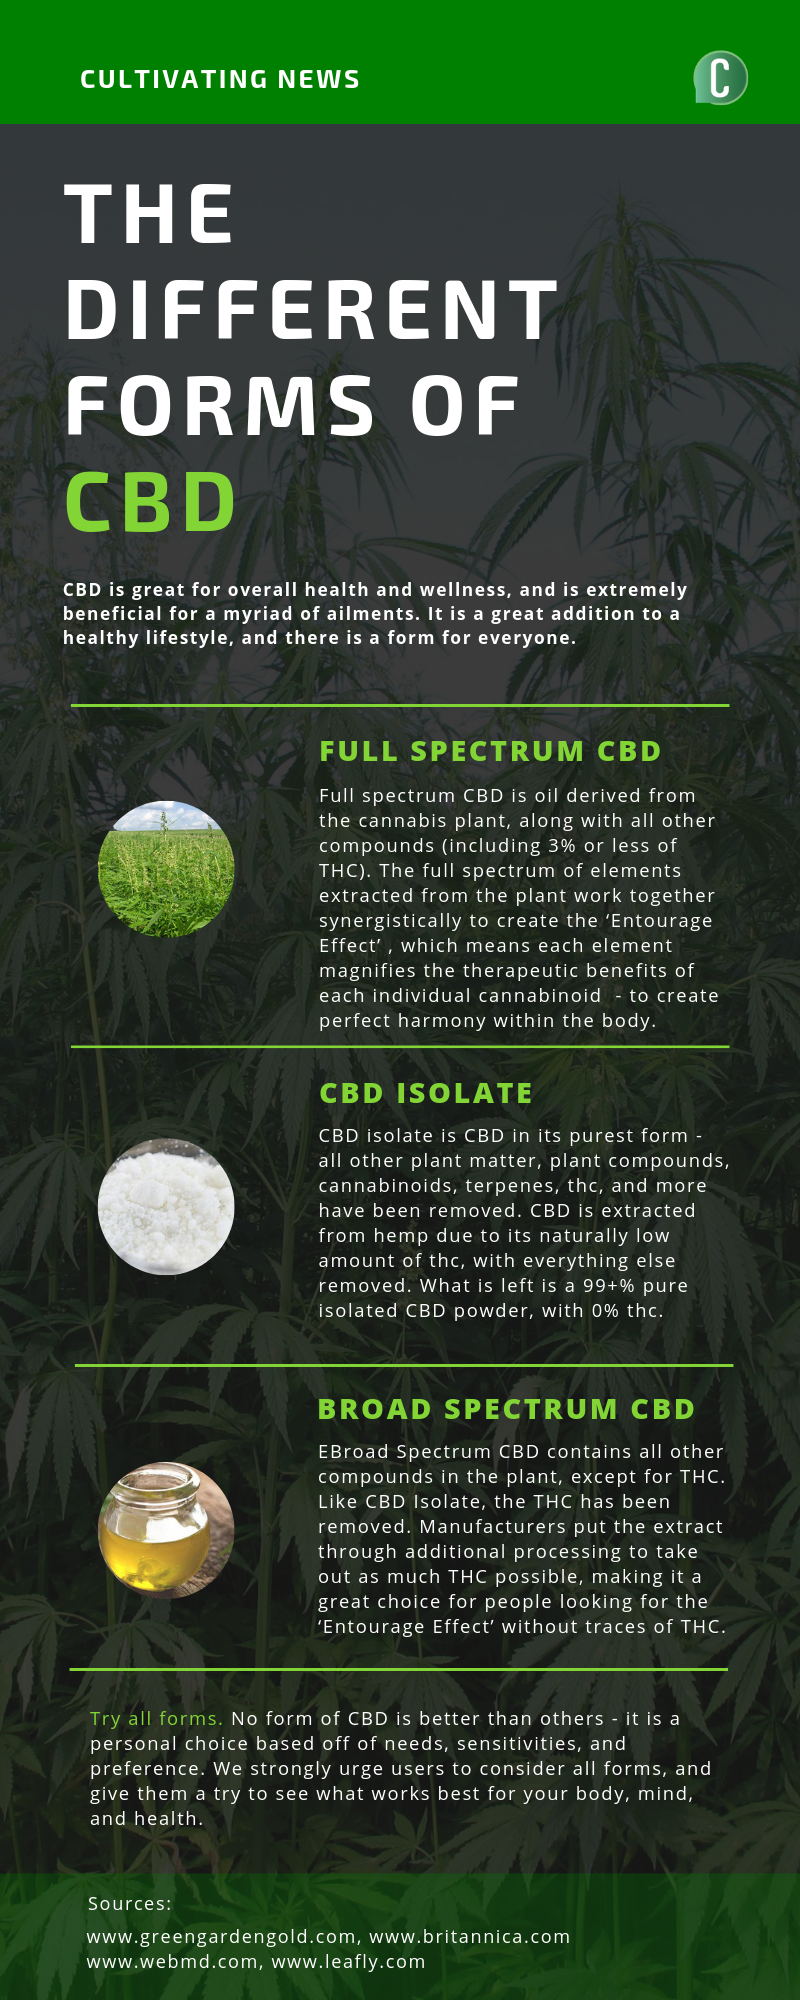 Forms of CBD - Infographic